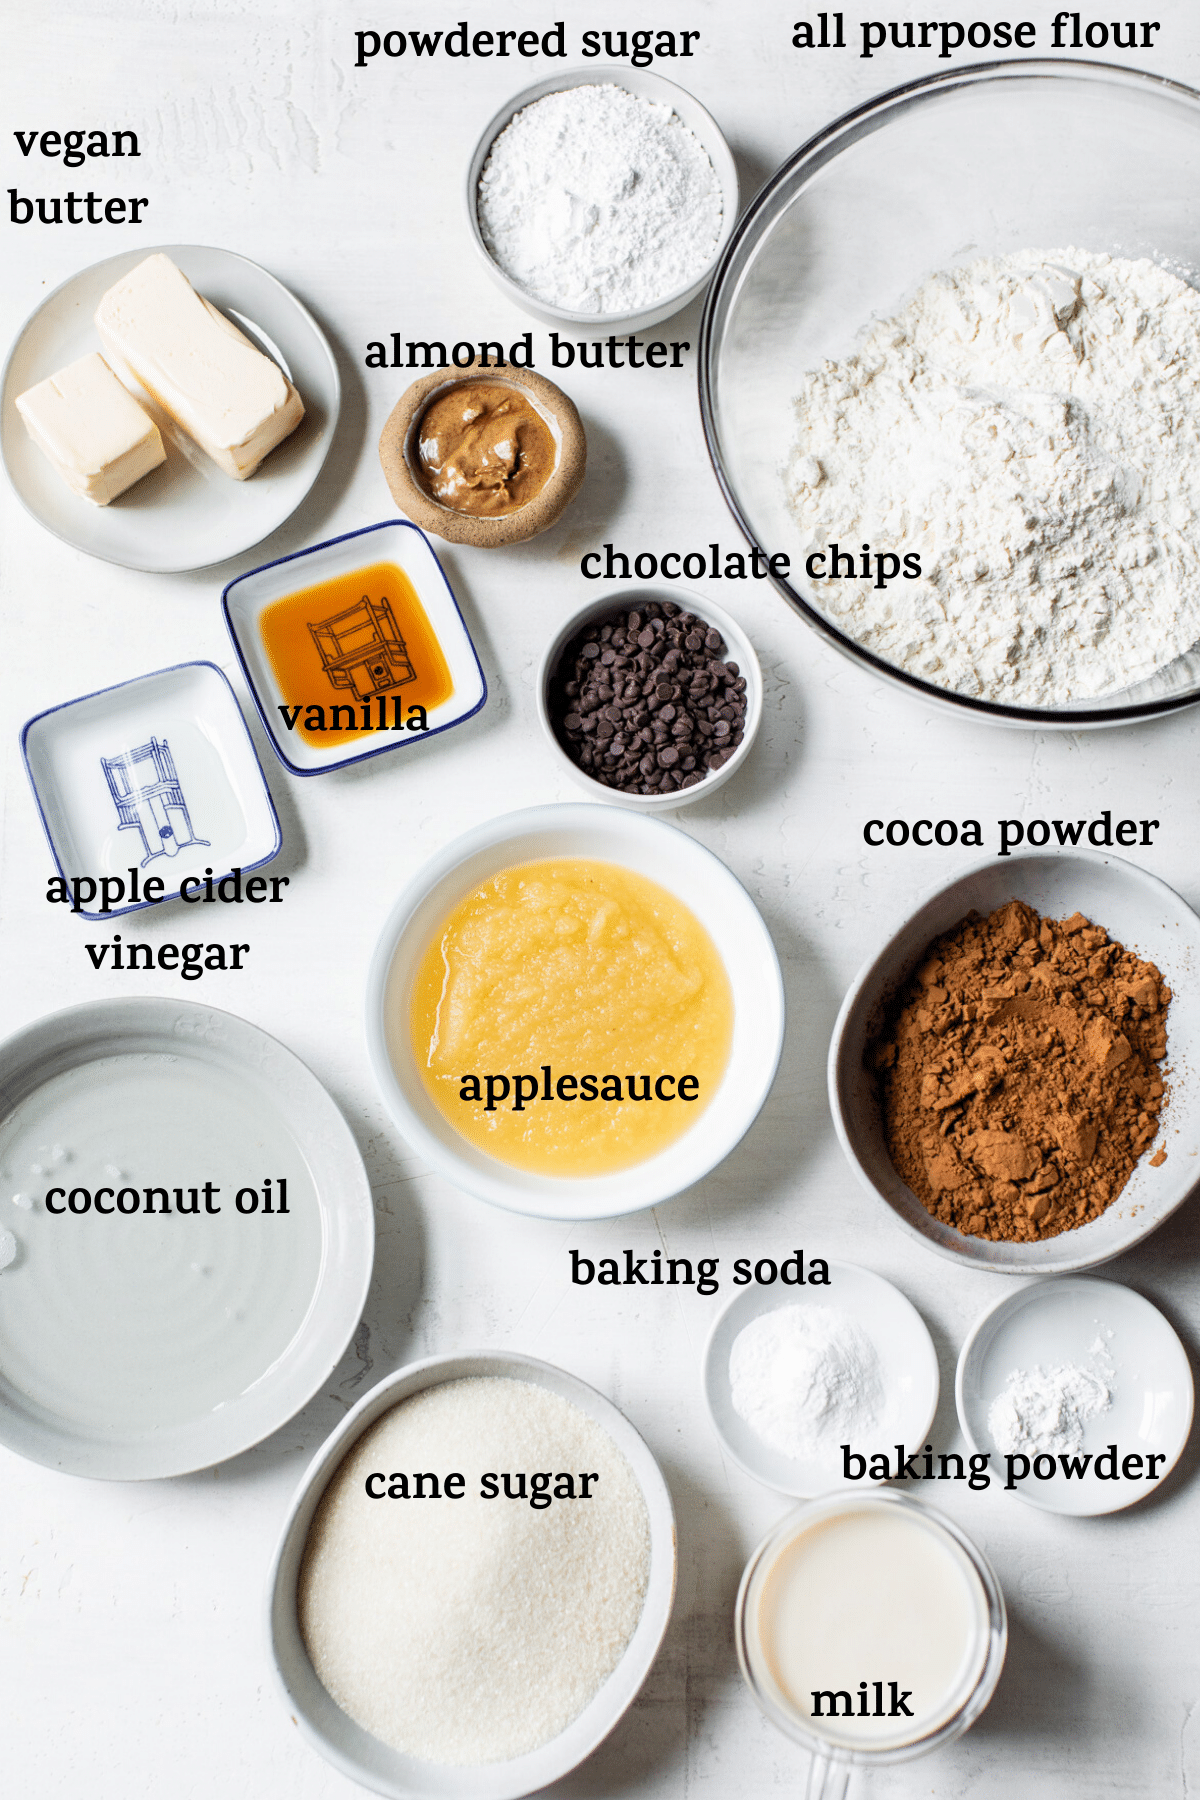 cake ingredients with text